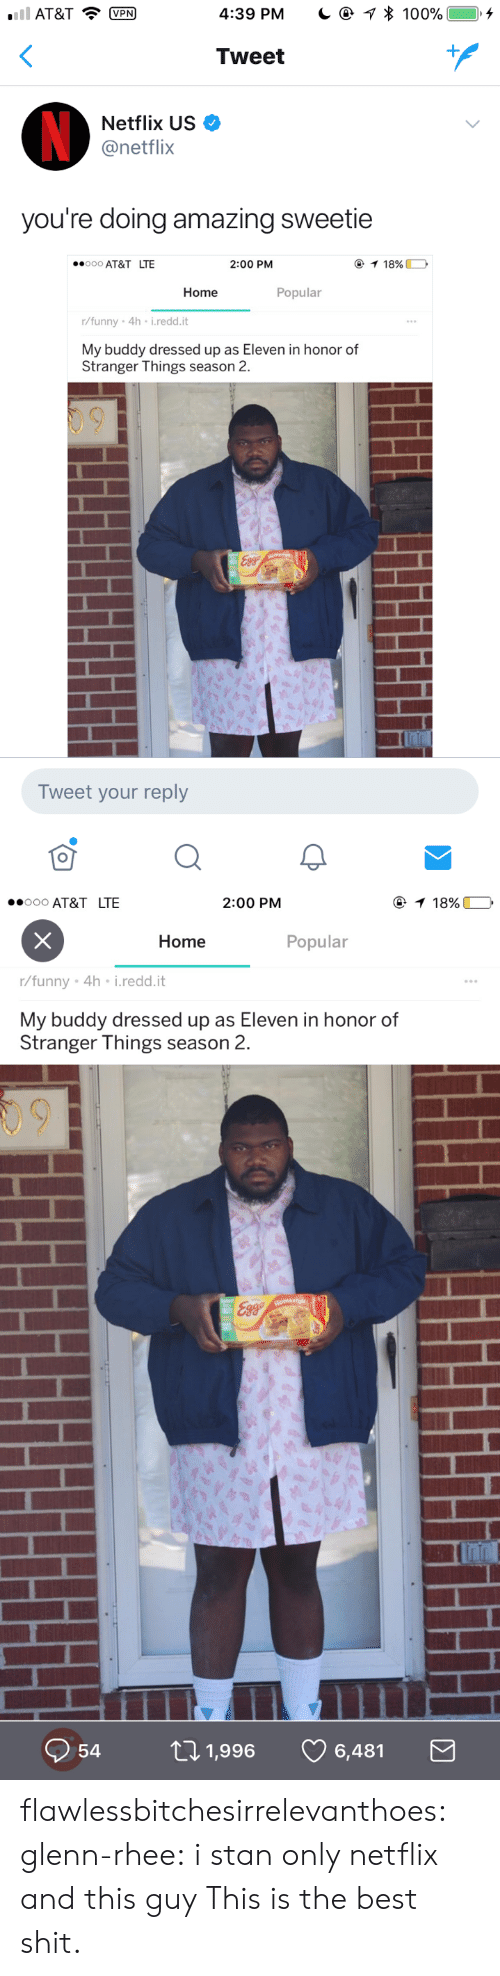 Anaconda, Funny, and Netflix: AT&TP  4:39 PM  * 100%  ), +  Tweet  Netflix US  @netflix  you're doing amazing sweetie  000 AT&T LTE  2:00 PM  Home  Popular  r/funny 4h i.redd.it  My buddy dressed up as Eleven in honor of  Stranger Things season 2.  Tweet your reply   ooo AT&T LTE  2:00 PM  Home  Popular  r/funny . 4h-i·reddit  My buddy dressed up as Eleven in honor of  Stranger Things season 2.  09  Q54ロ1,996 6,481 flawlessbitchesirrelevanthoes: glenn-rhee:  i stan only netflix and this guy  This is the best shit.